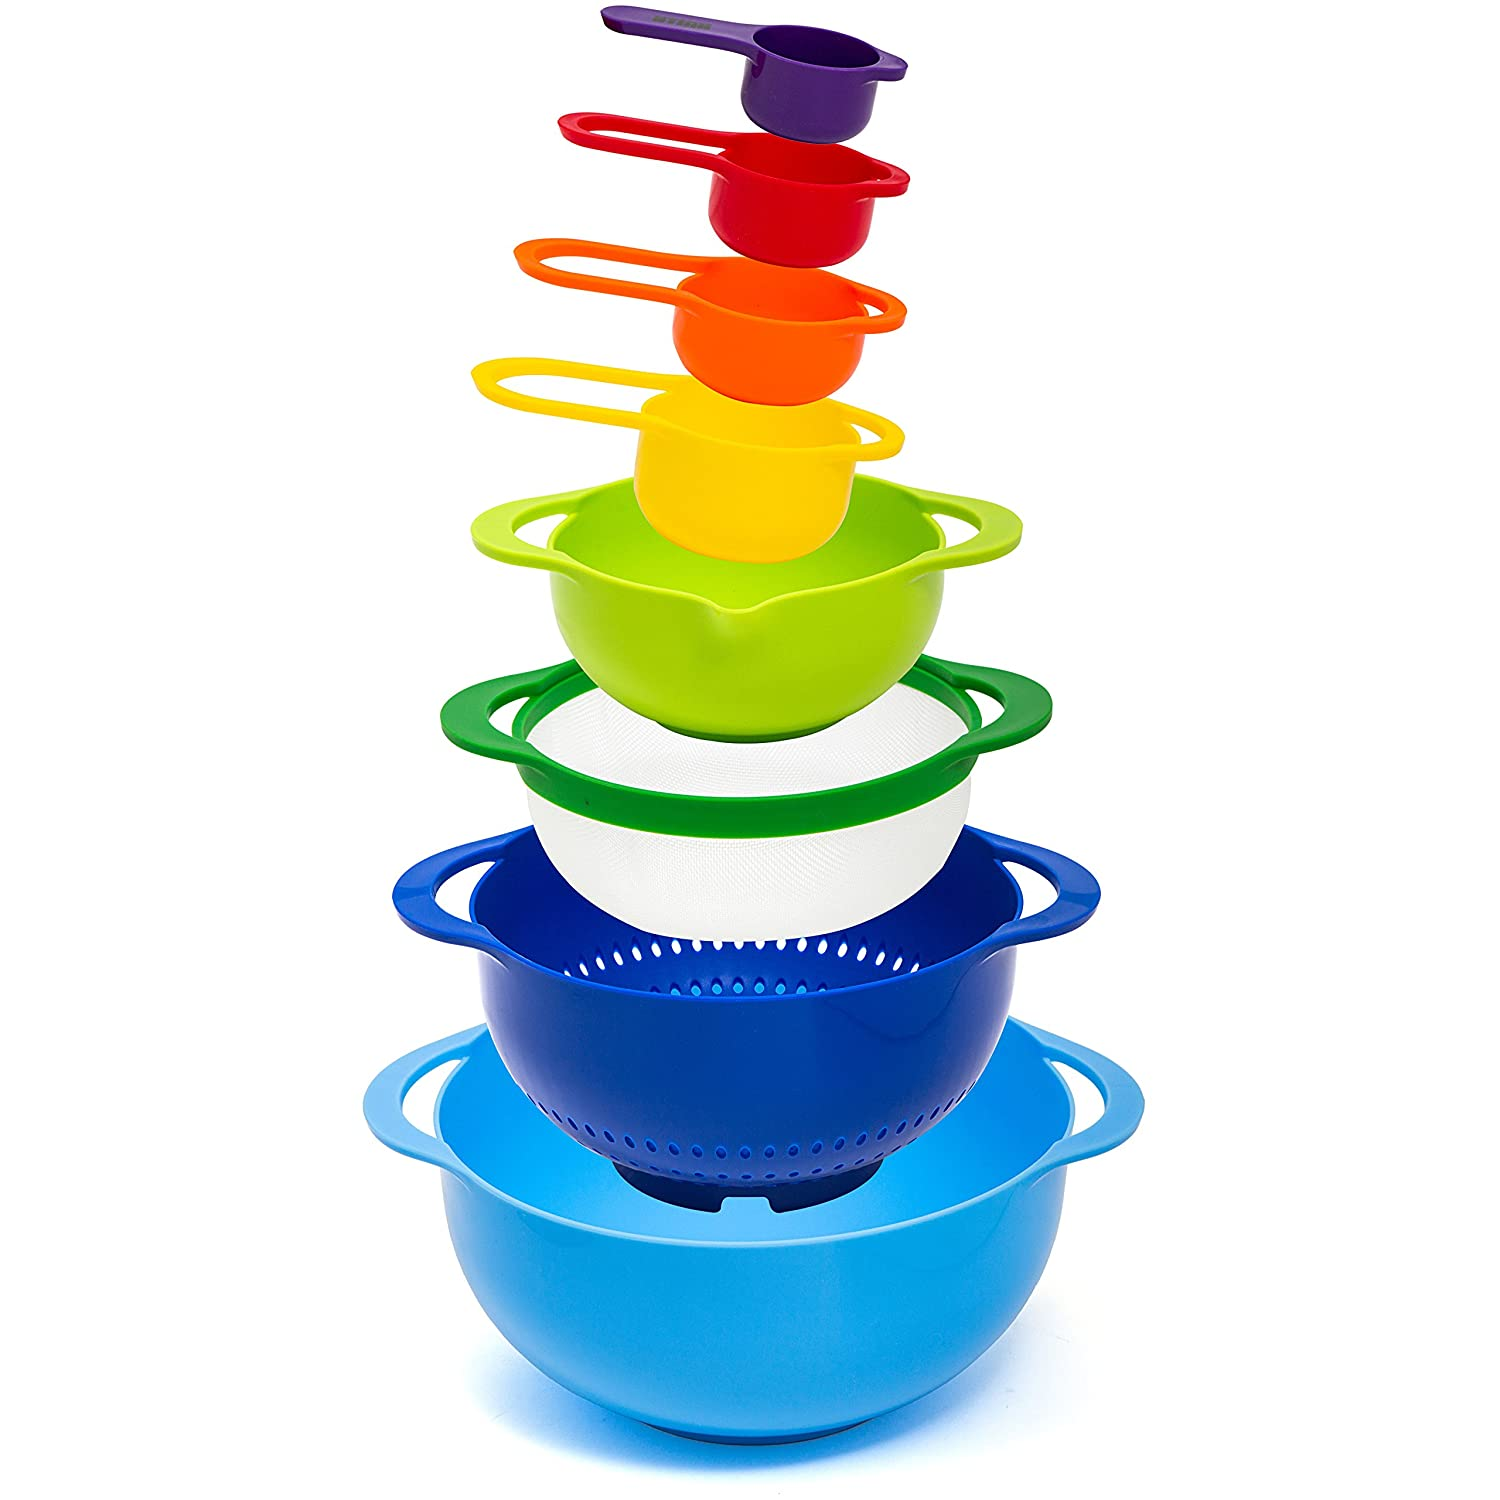 HULLR 8-Piece Measuring Mixing Bowl Set, Colorful Stackable Bowls For Baking Cooking & More HÜLLR HKMBS-100